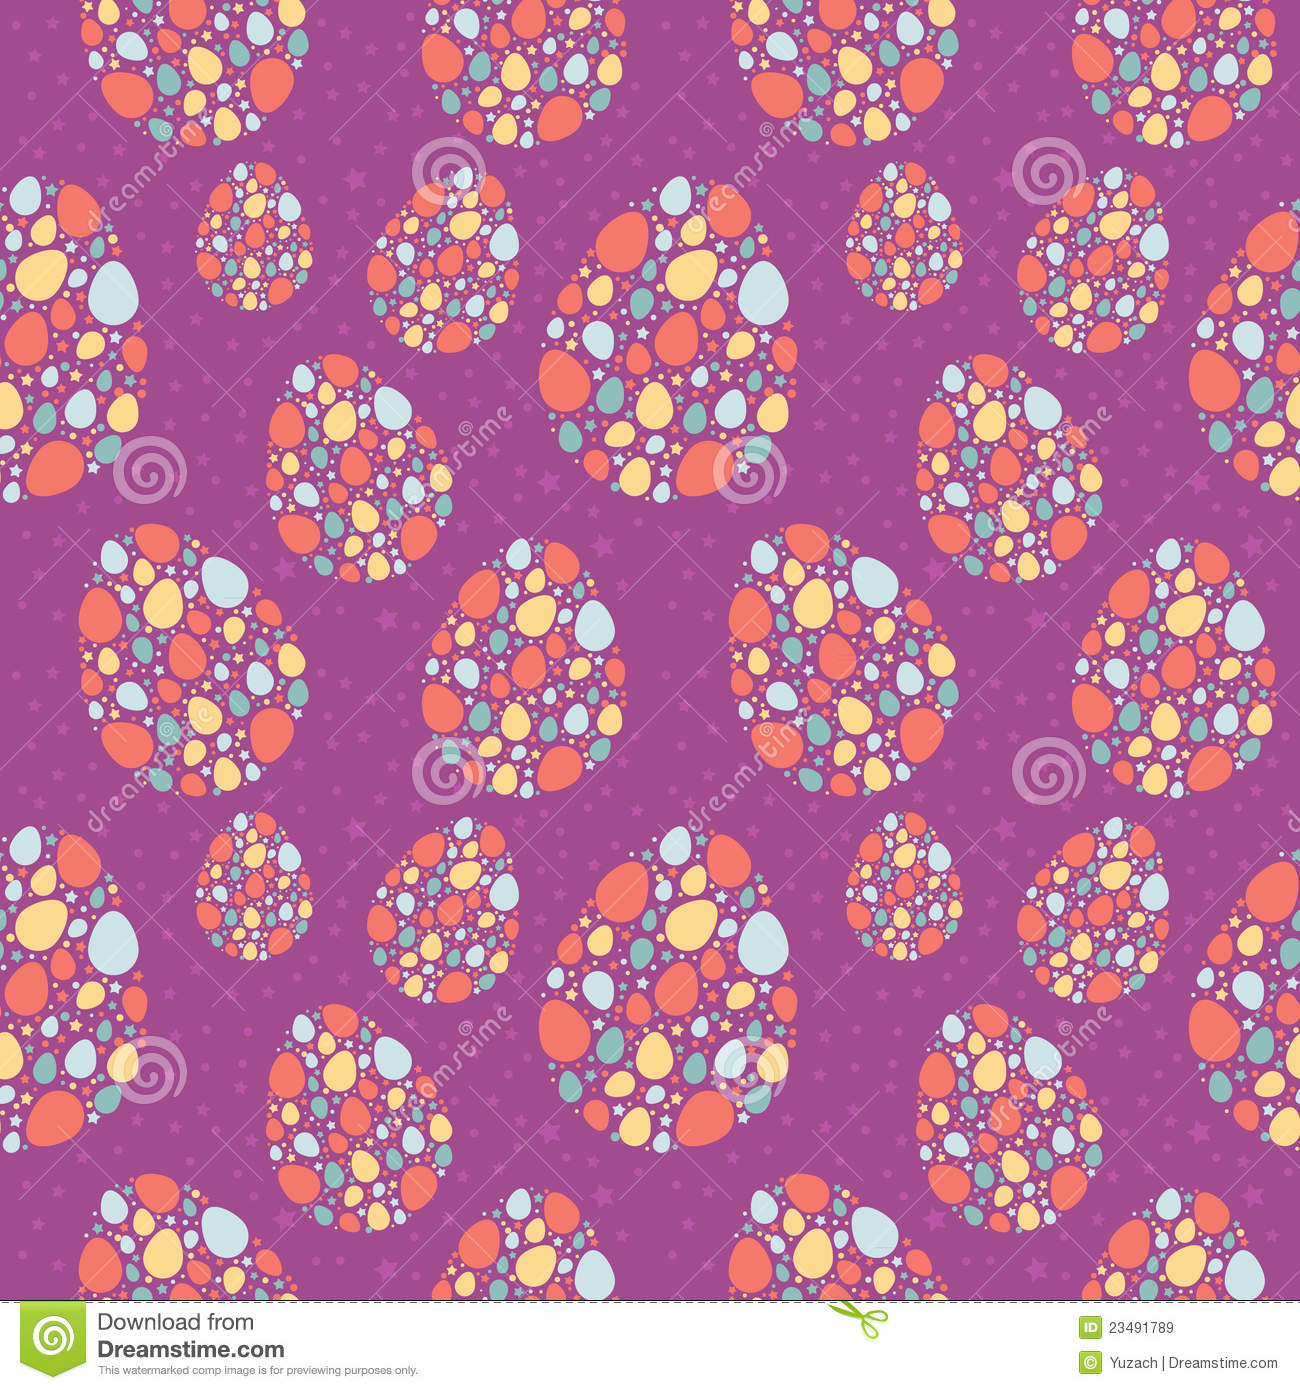 Cute Easter Egg Wallpaper Stylized Easter Eggs Seamless Texture Royalty Free Stock